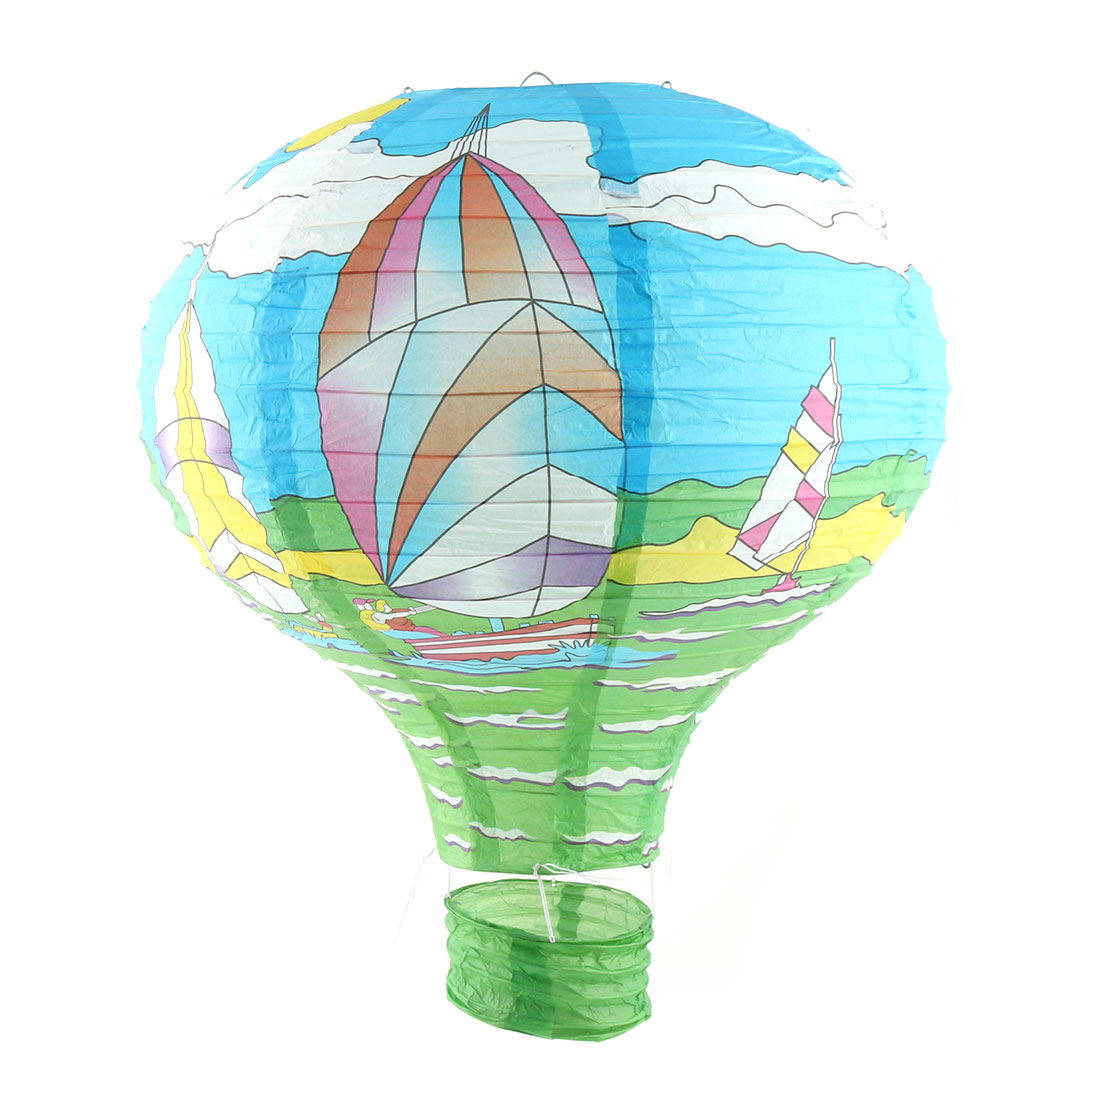 Wedding Holiday Paper Sailing Boat Pattern DIY Room Hanging Lightless Hot Air Balloon Lantern Blue 16 Inches Dia